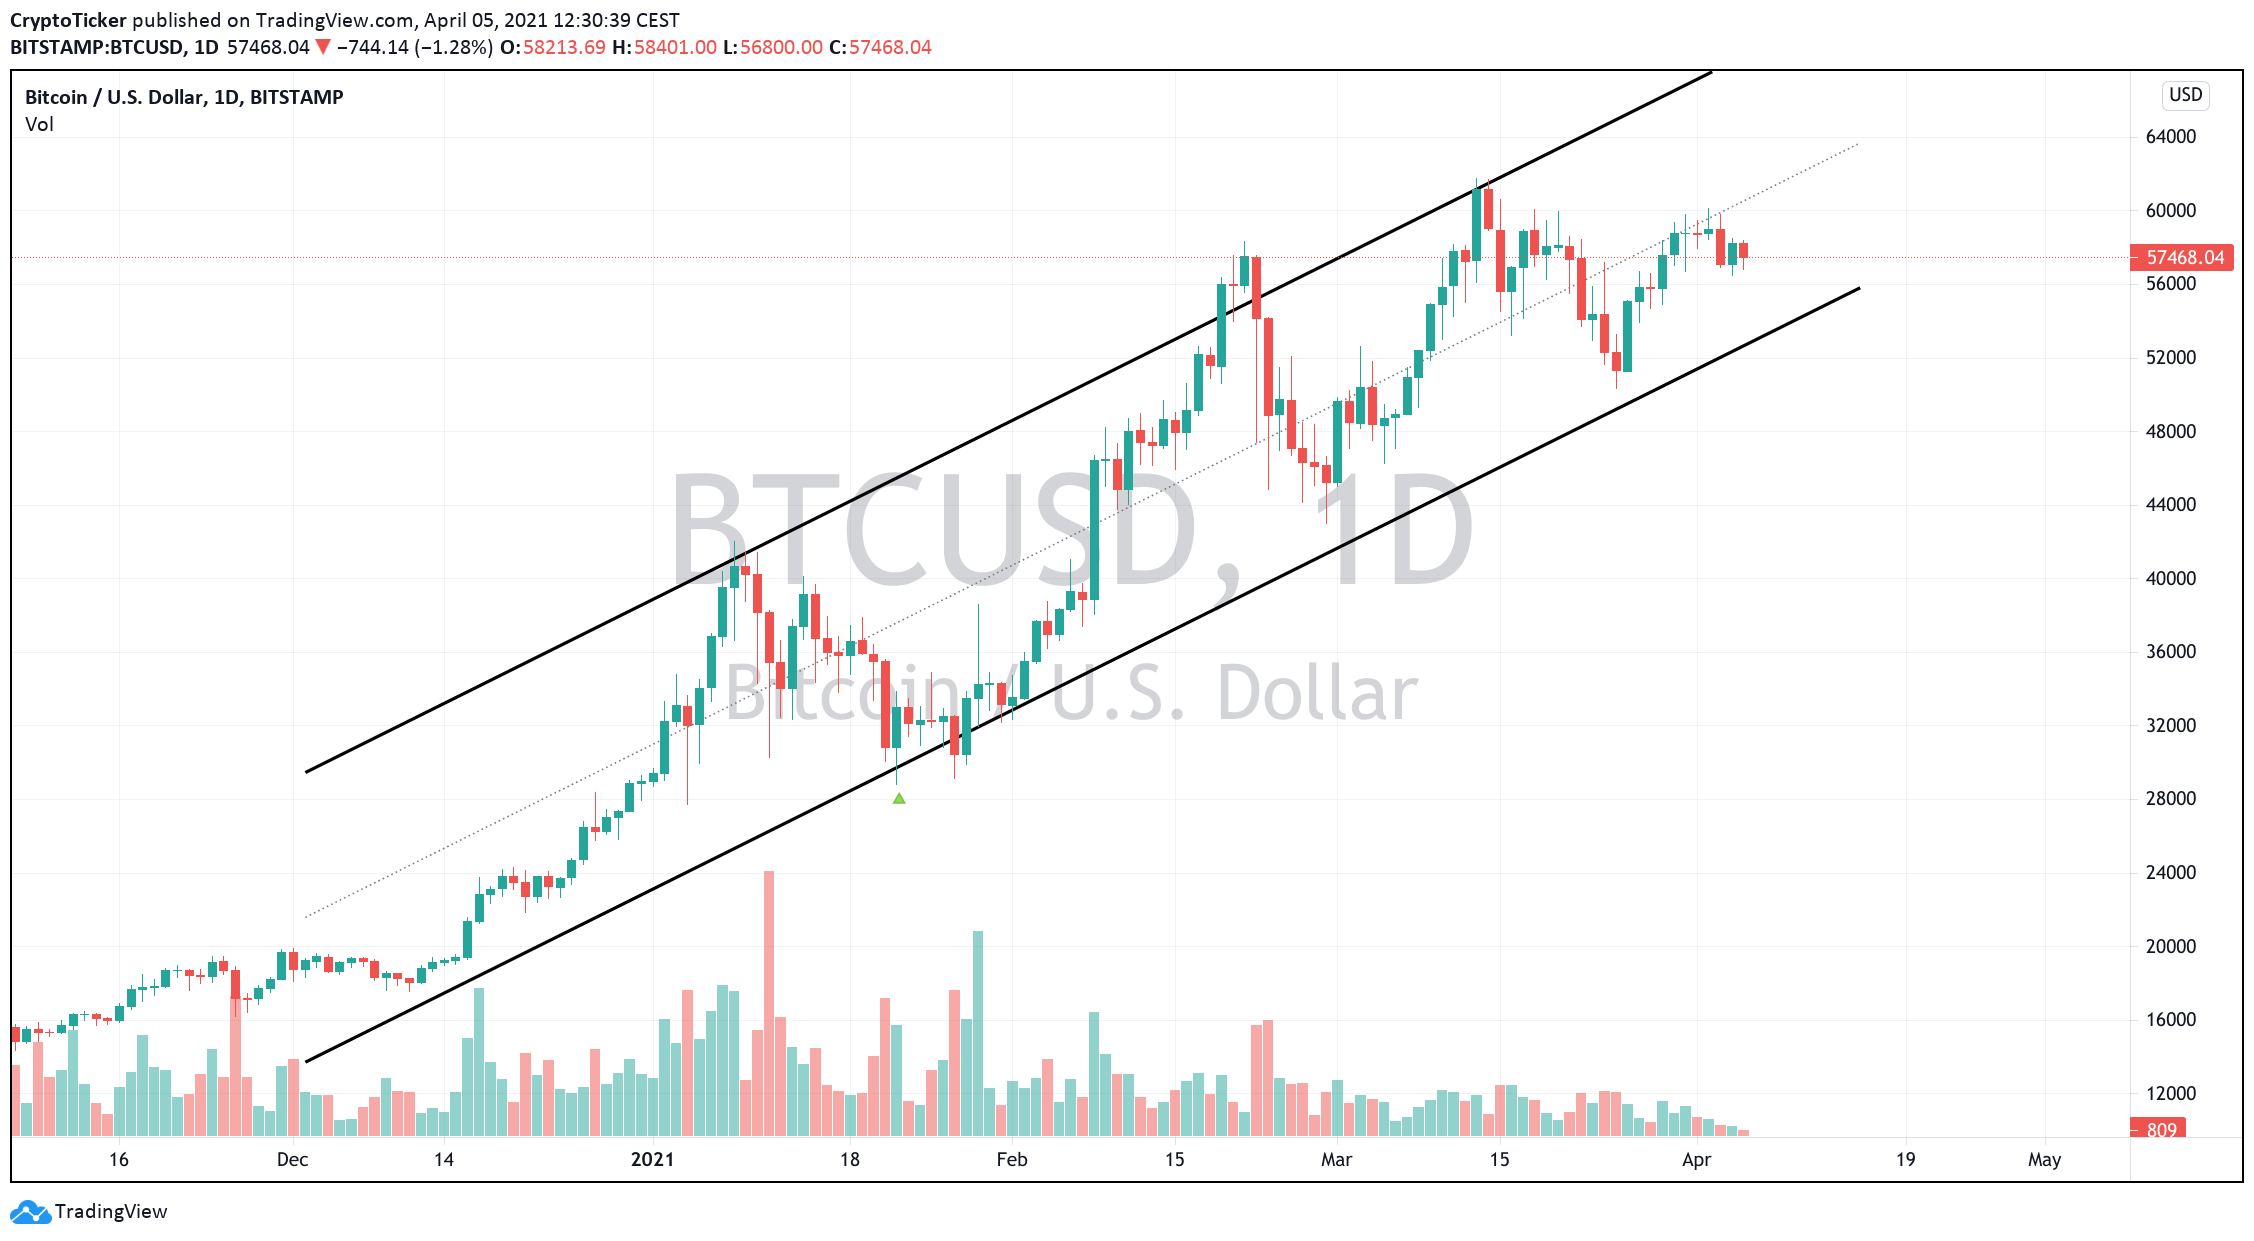 BTC/USD 1-day chart showing Bitcoin's current uptrend